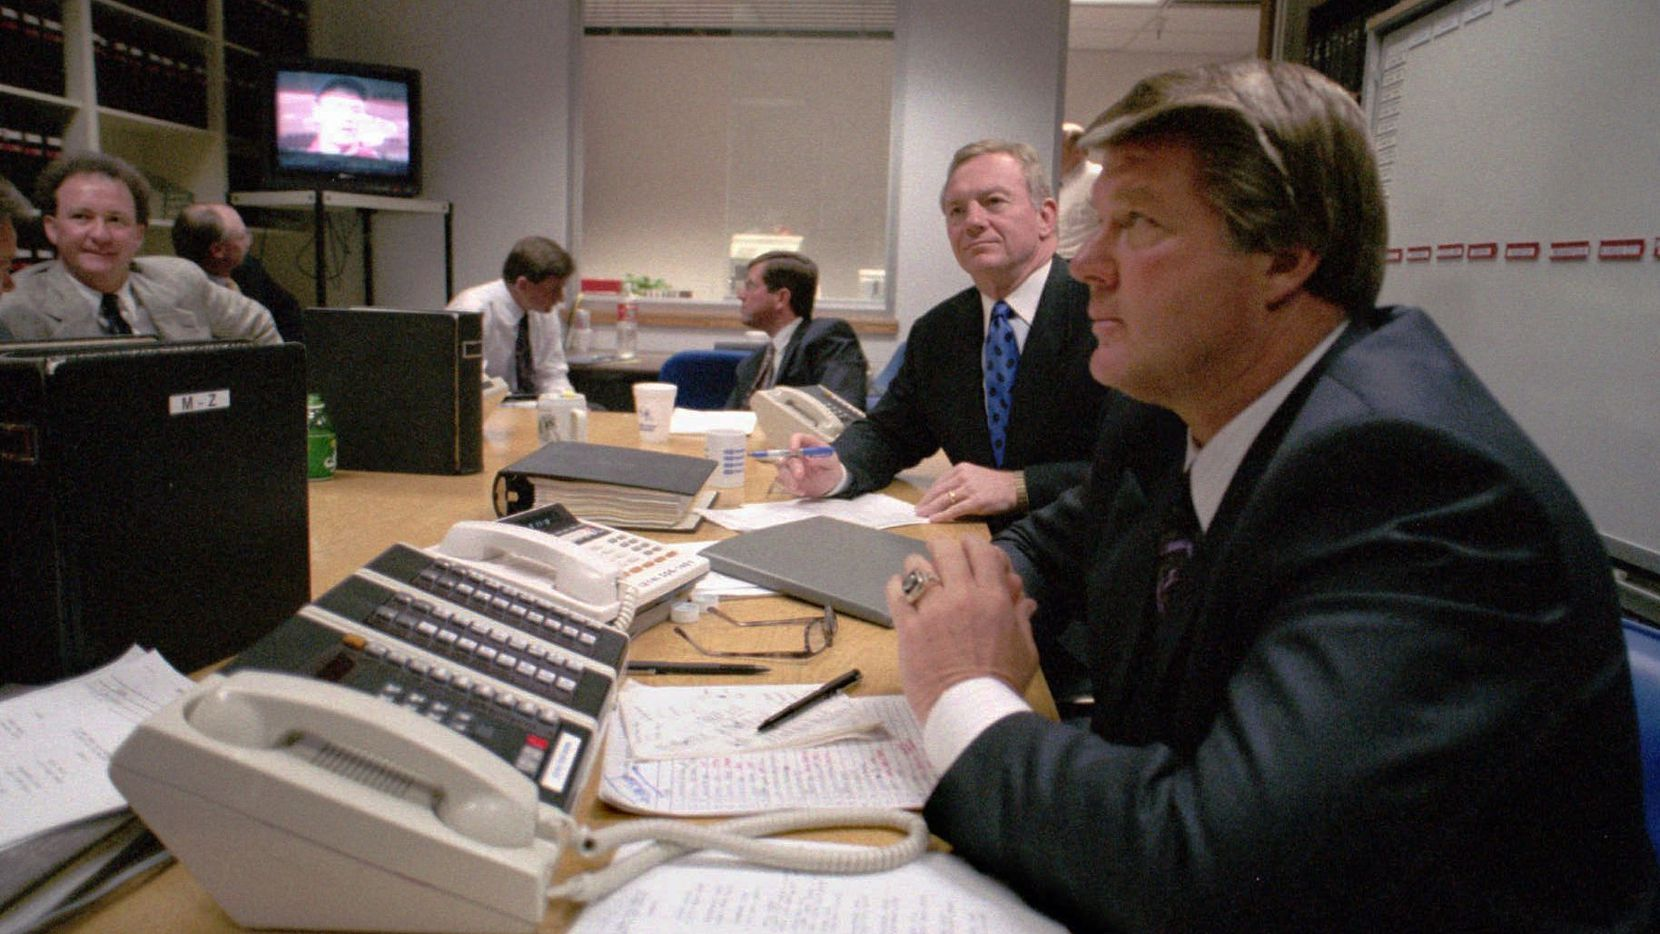 Dallas Cowboys coach Jimmy Johnson (right) sits with team owner Jerry Jones (second from right) in a calm and quiet war room at the team's office at Valley Ranch in Irving, Texas, during the NFL draft in 1993.